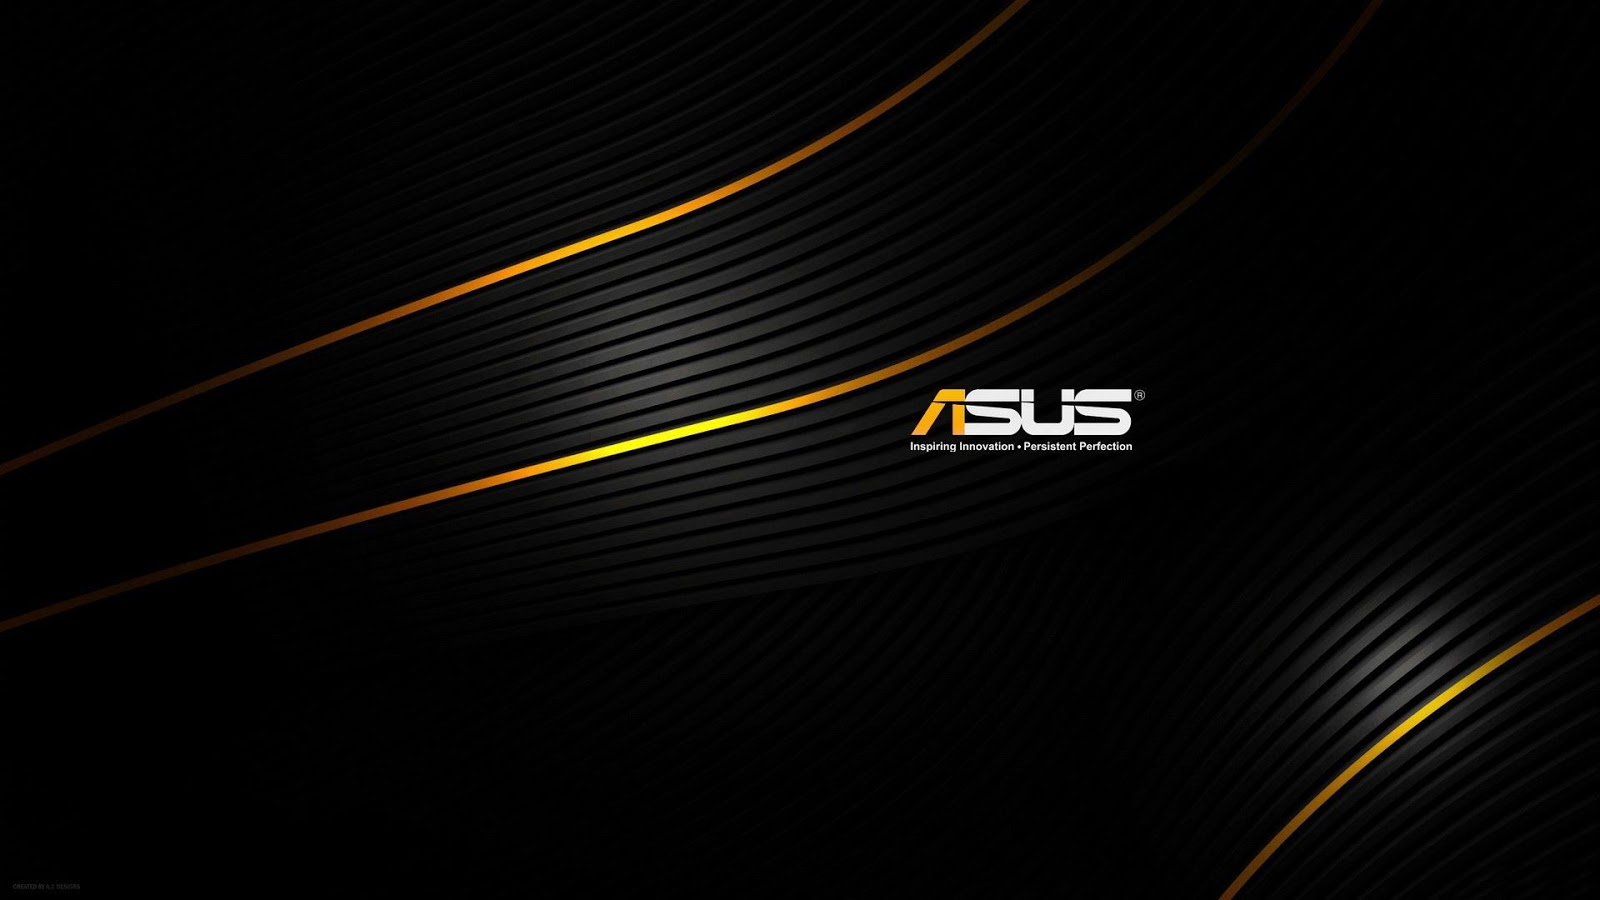 Fond d 39 cran asus hd fond d 39 cran hd - Asus x series wallpaper hd ...